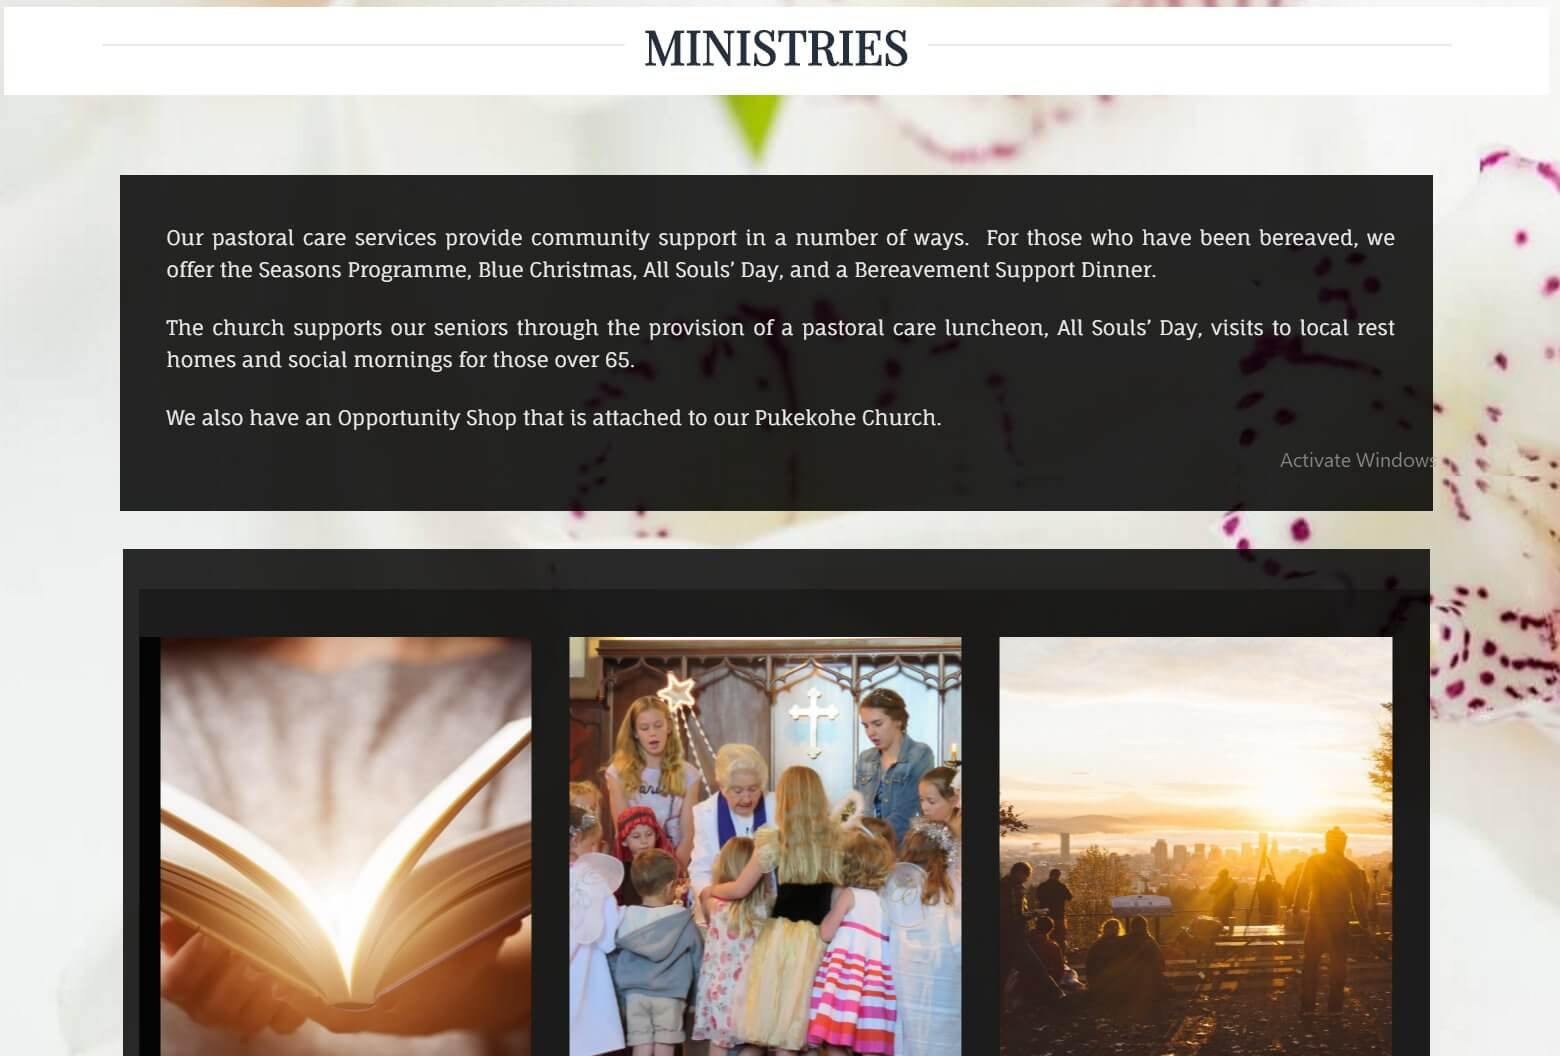 Ministries first section